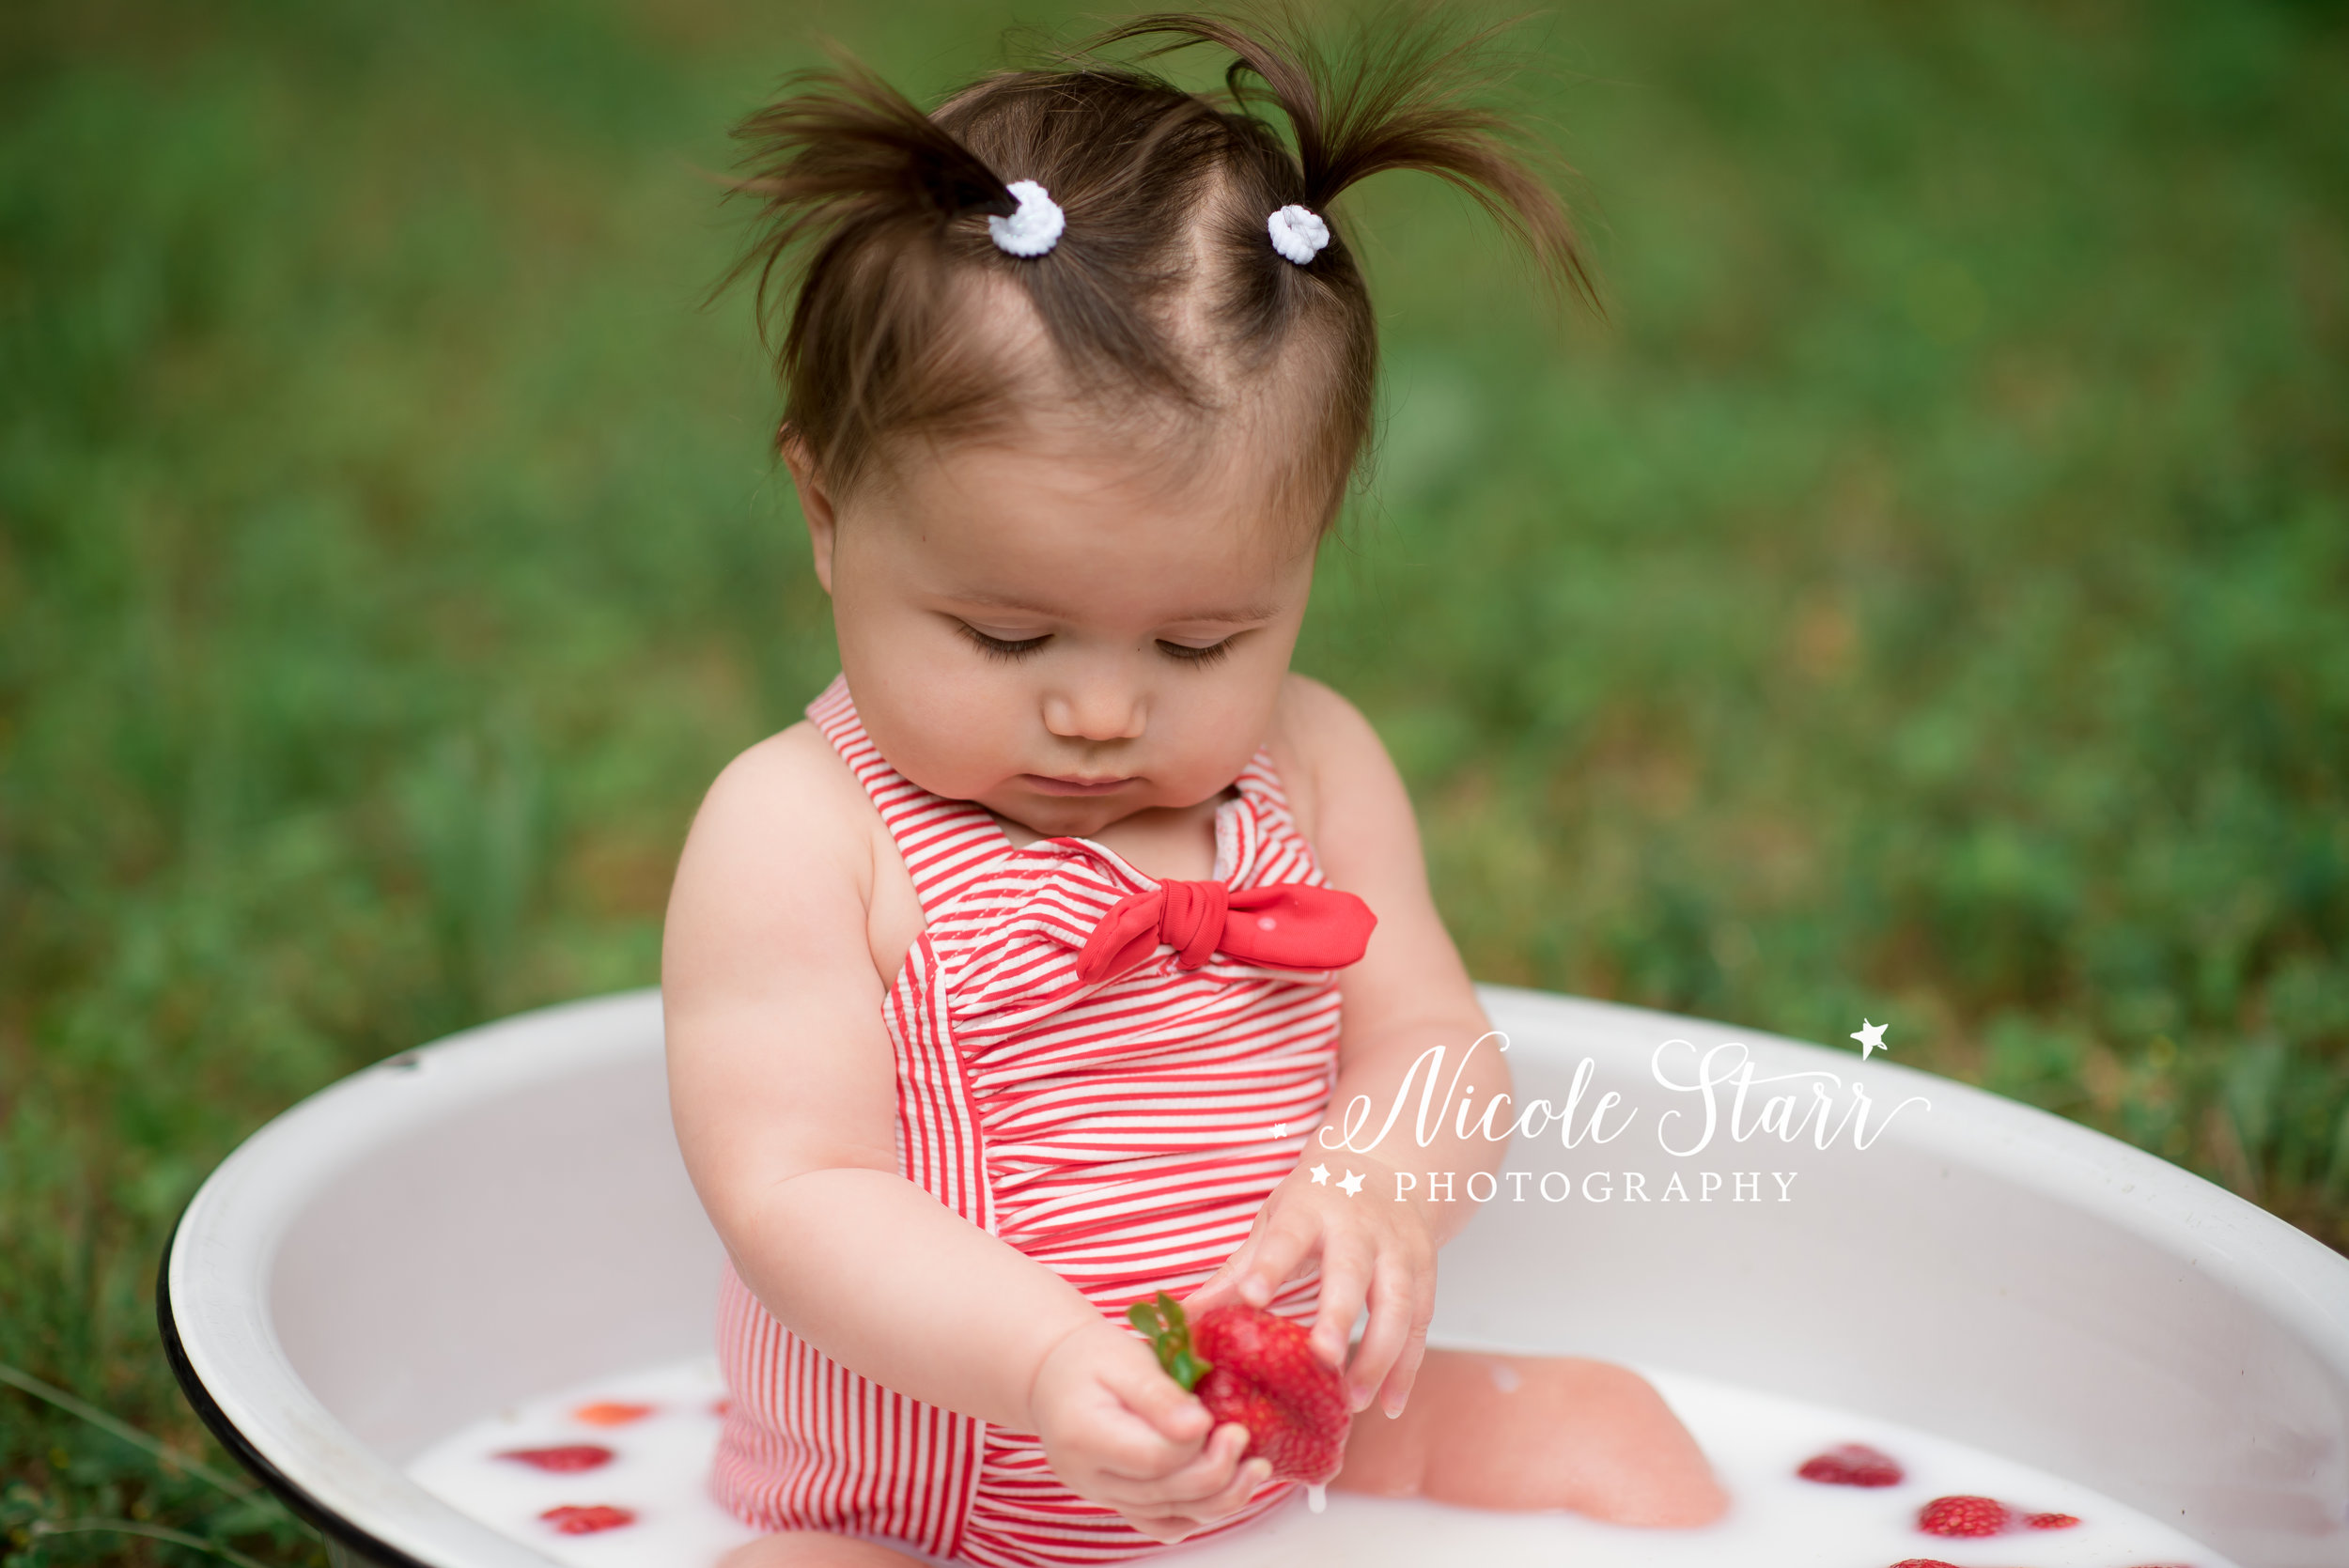 Nicole Starr Photography | Saratoga Springs Children's Photographer | Boston Children's Photographer | Upstate NY Children's Photographer | Children's Photographer | Delmar NY Children's Photographer | Loudonville NY Children's Photographer, client wardrobe, what to wear for milestone session, milestone photography, outfits for babies, client outfits, photoshoot outfits, strawberries and cream milk bath, milestone portraits, milestone session, 7 month milestone, milk bath